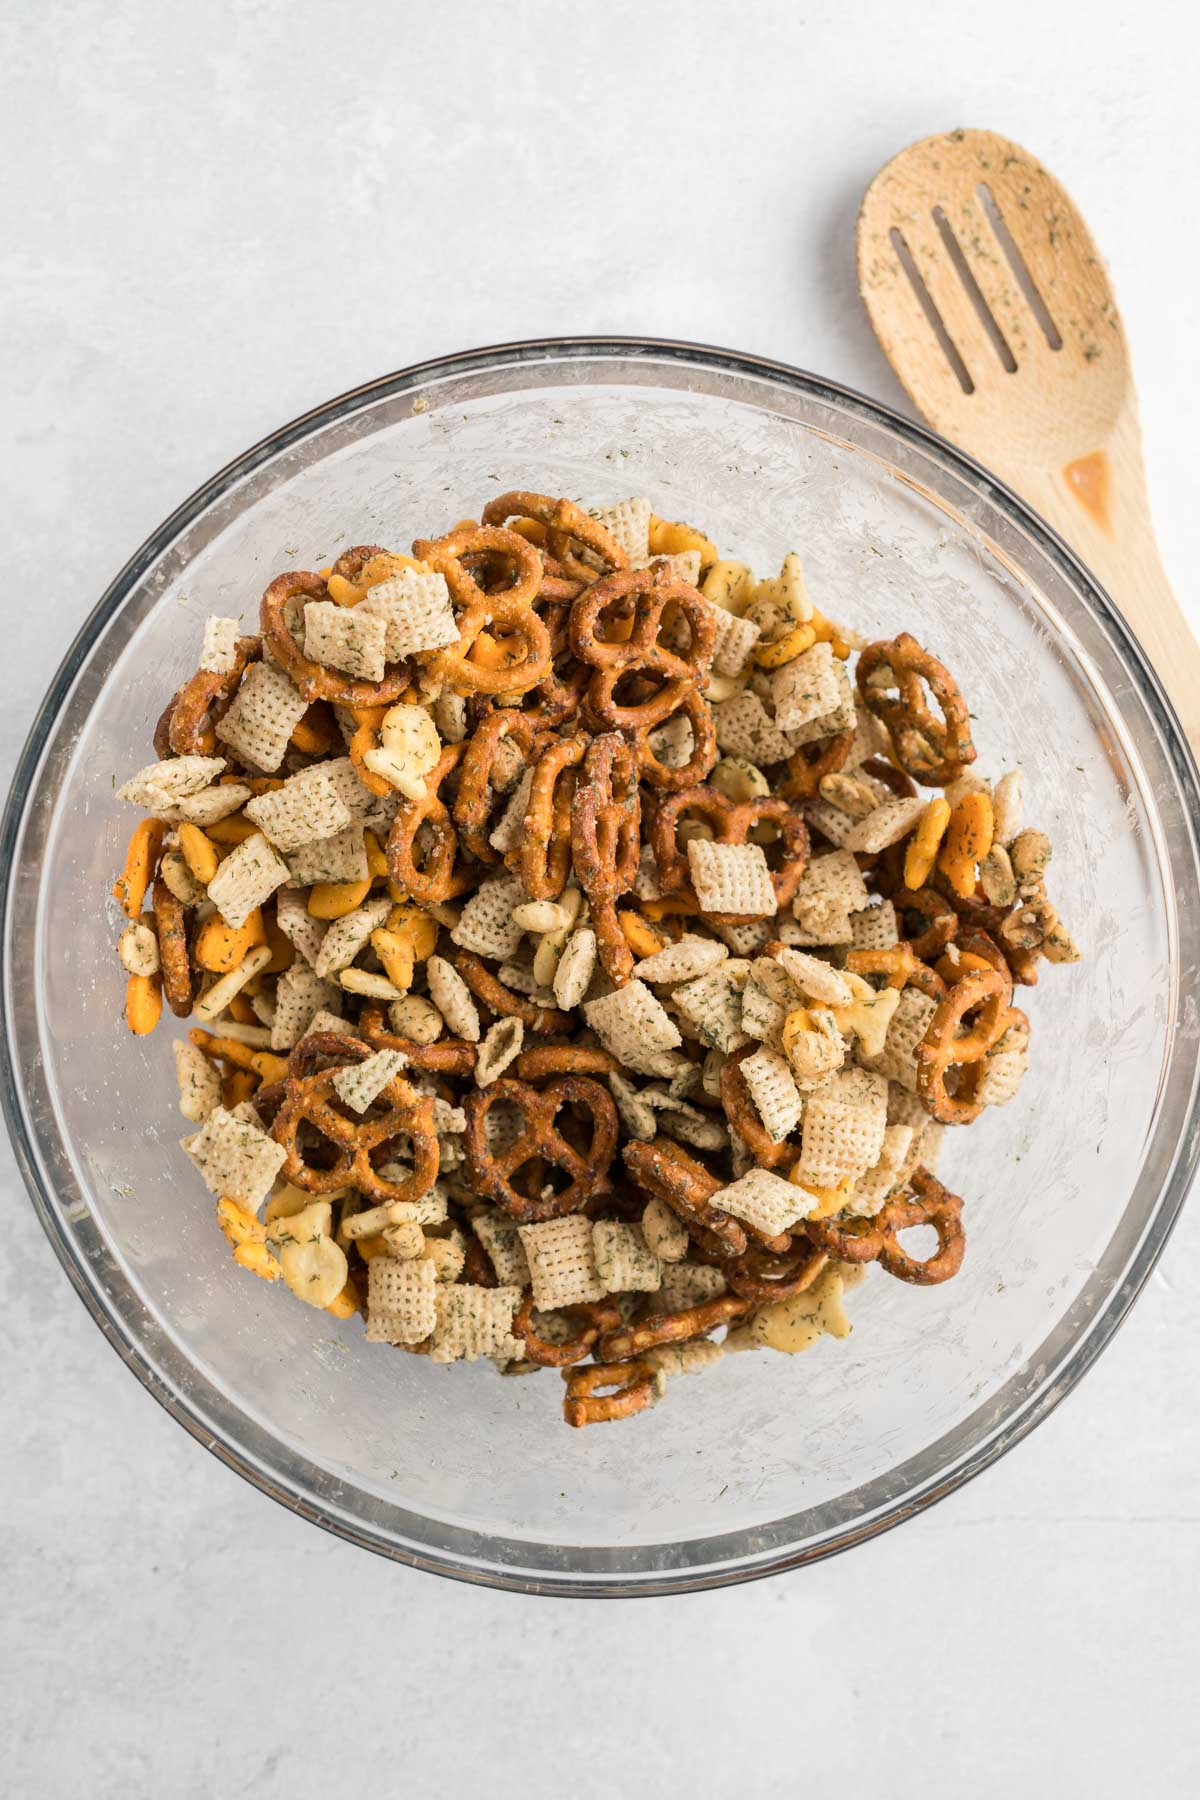 Chex mix, coated in seasoning and mixed in a mixing bowl.